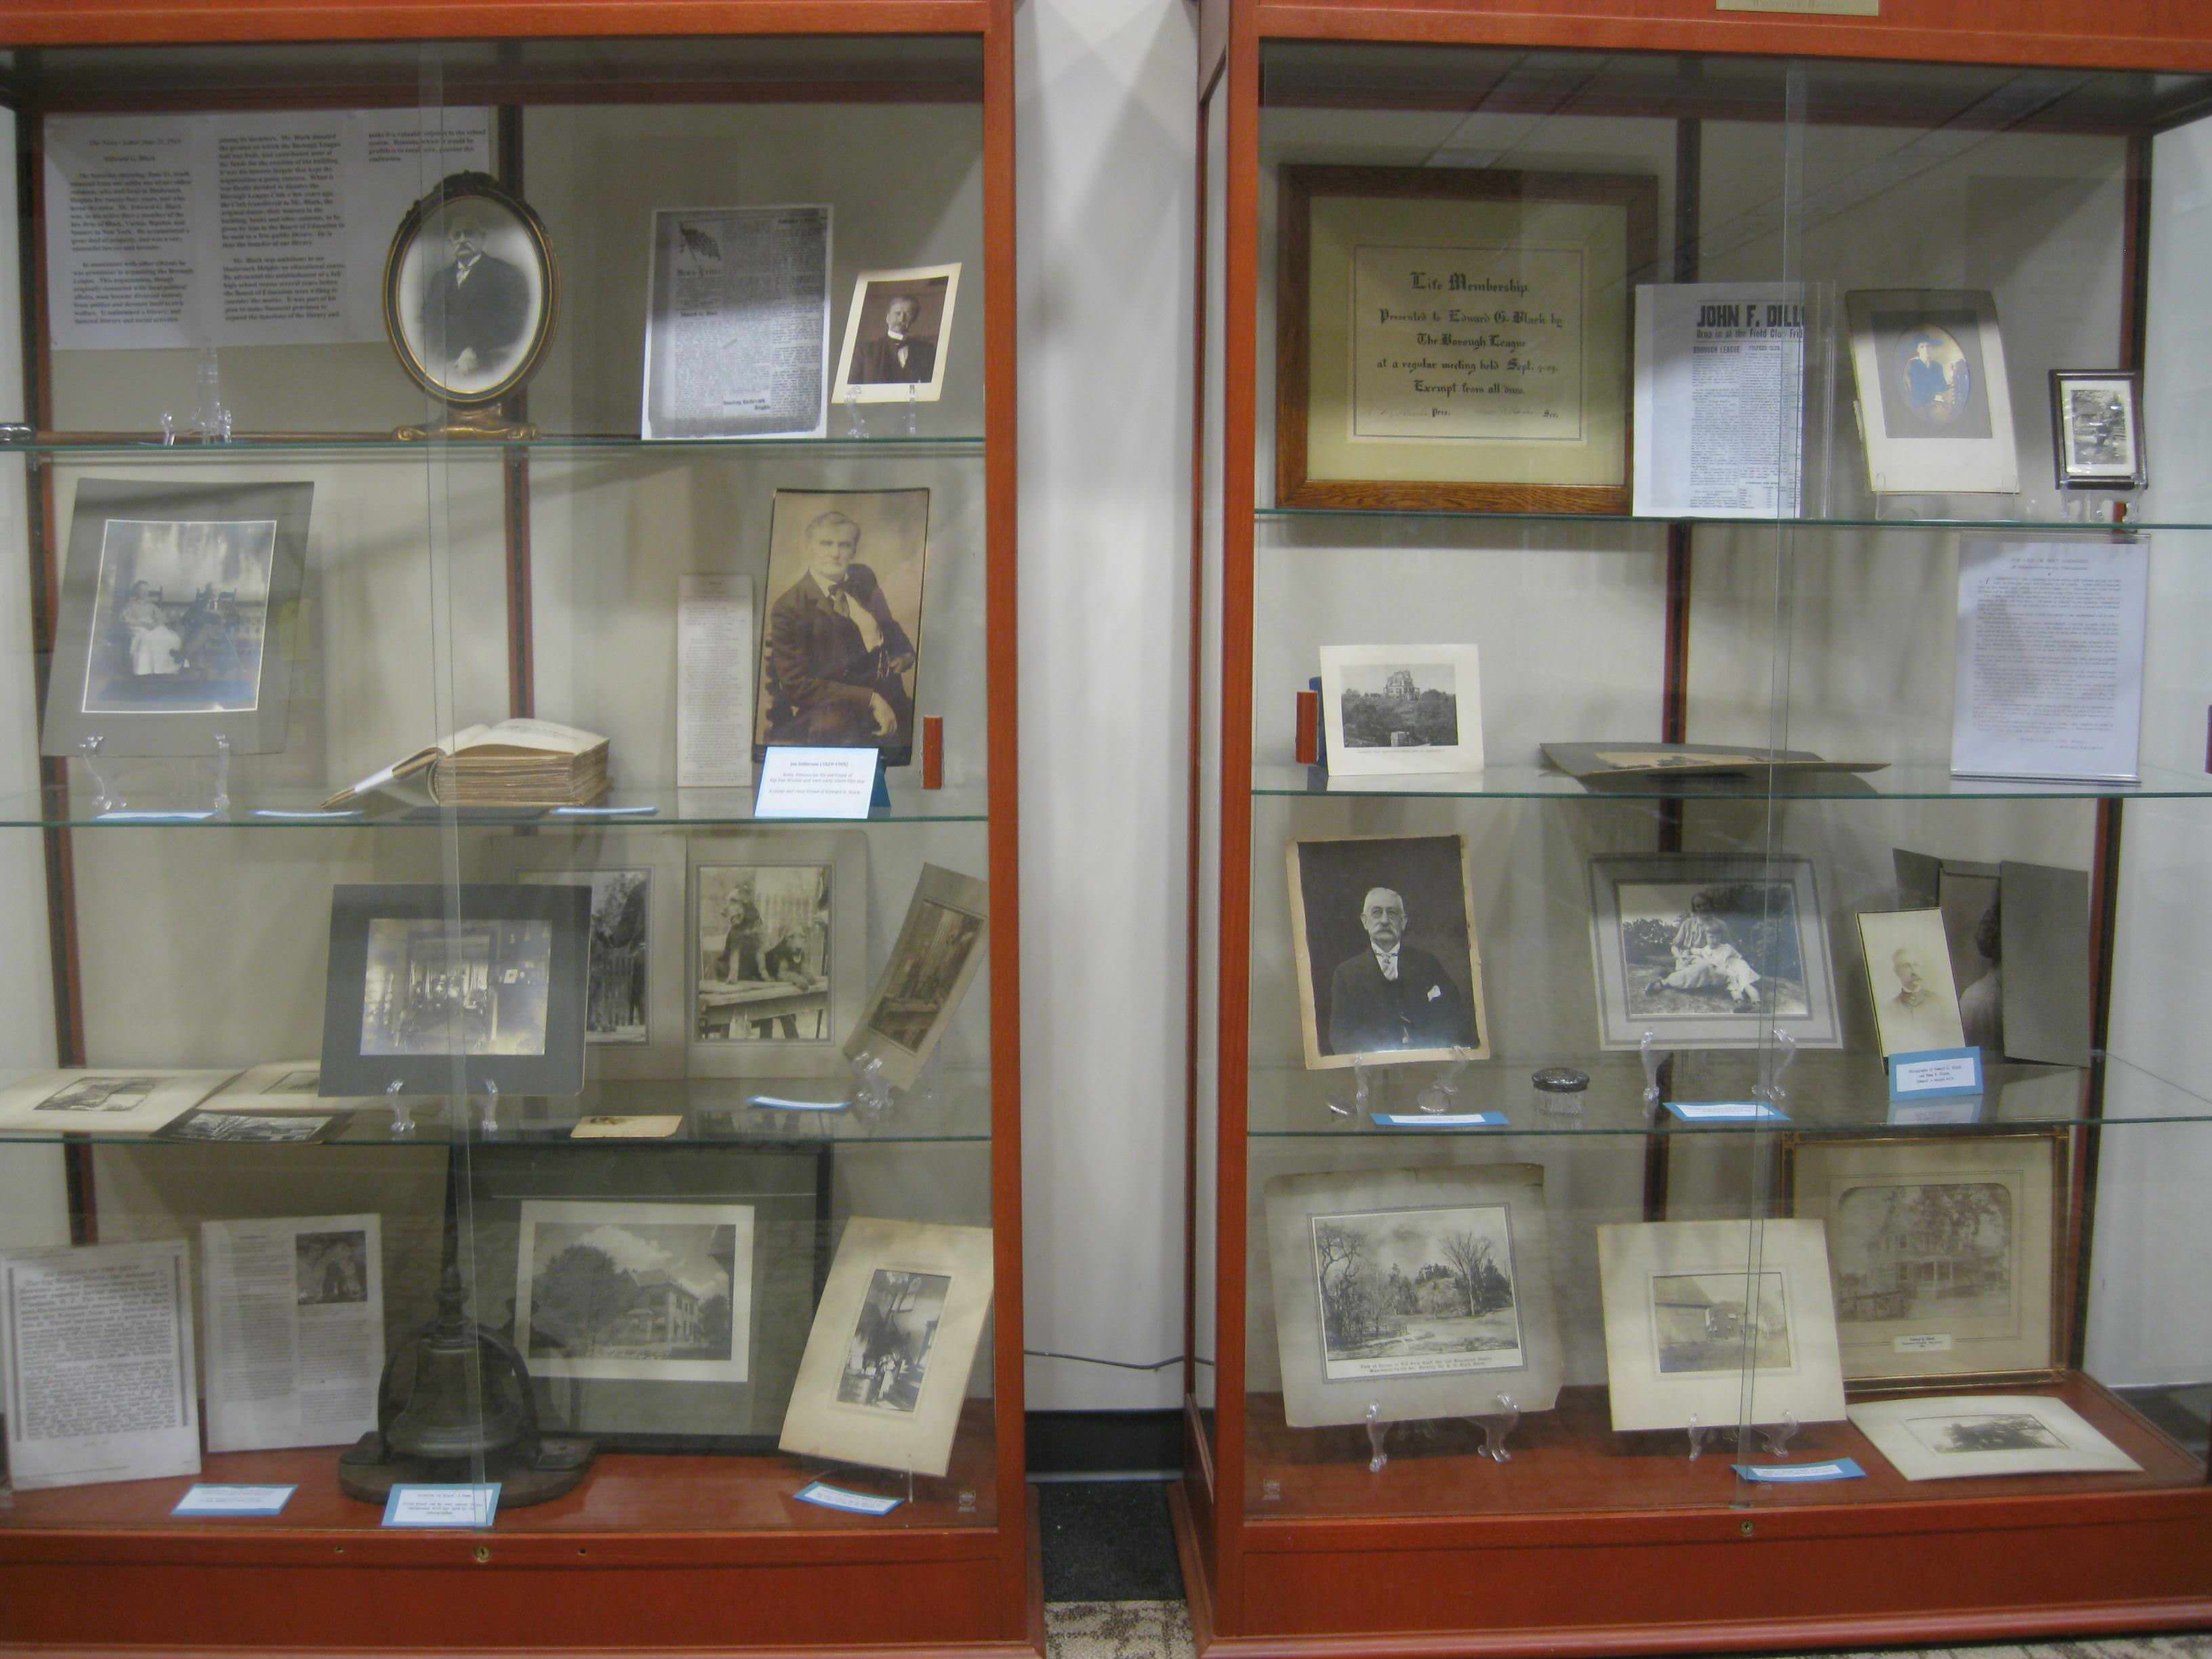 Display celebrates Edward Black